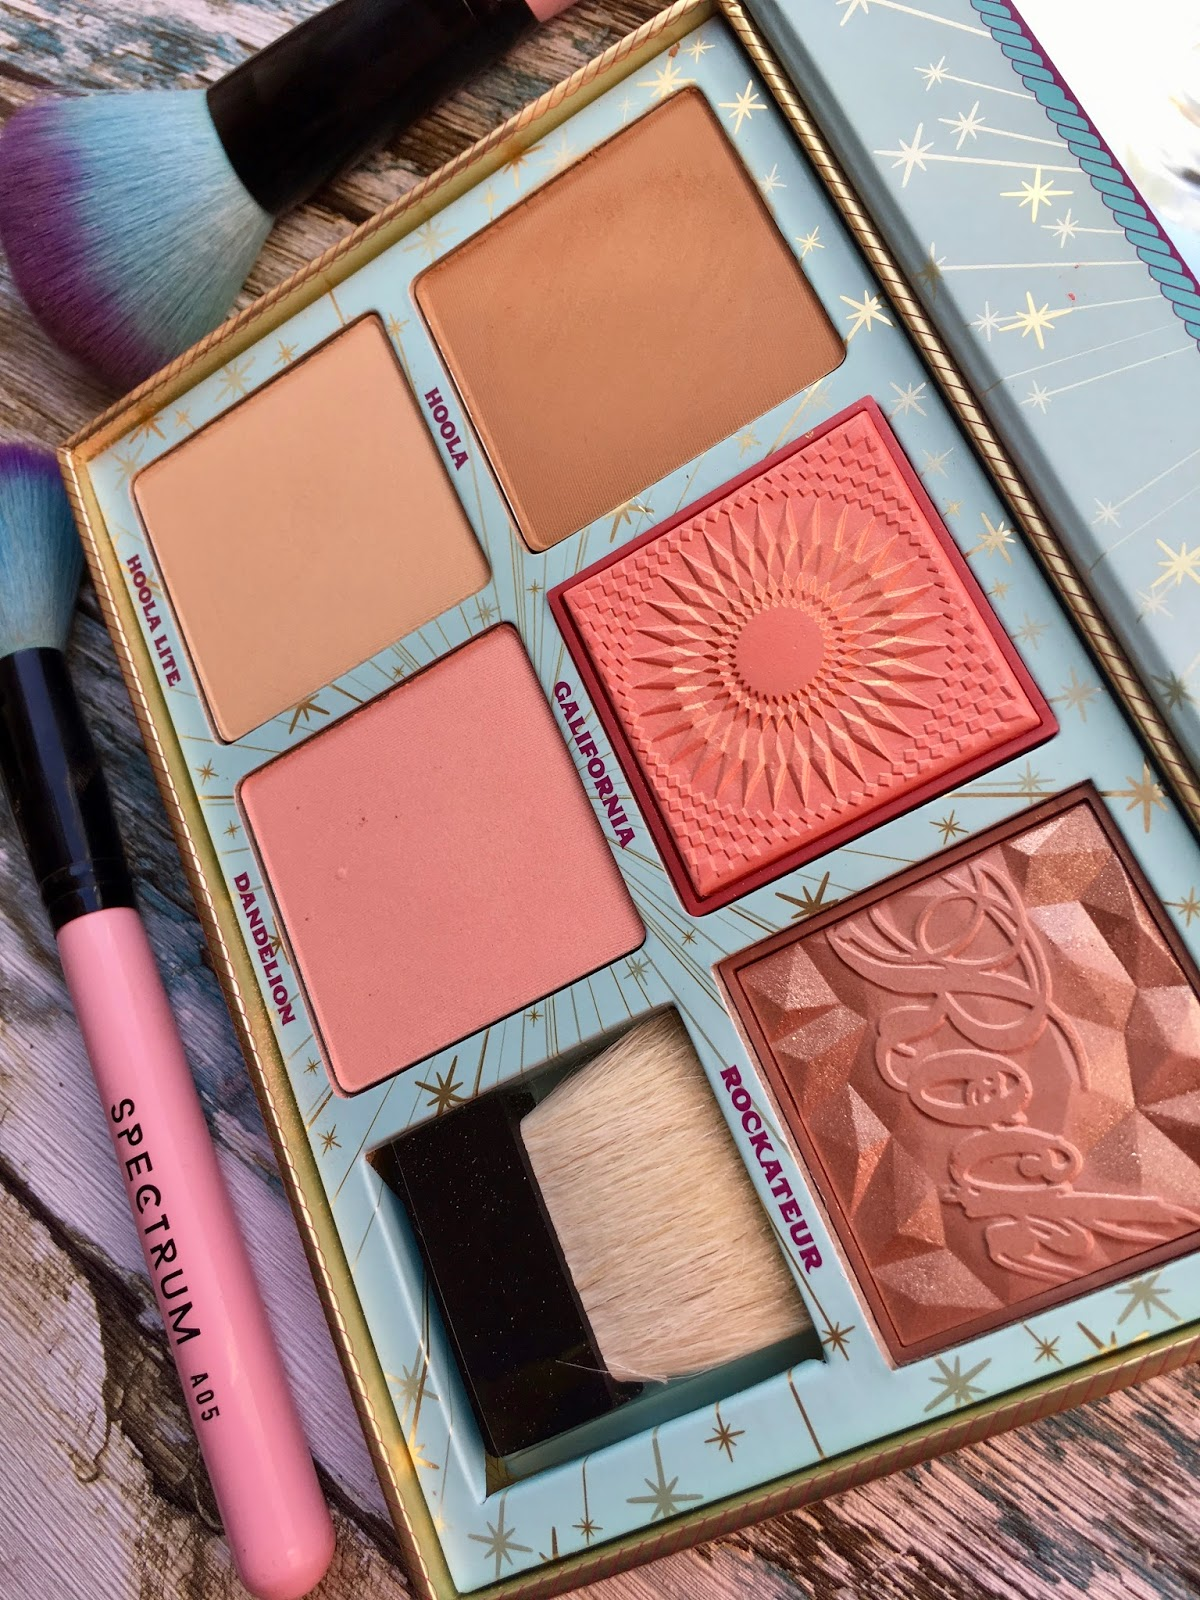 Benefit Cheek Parade Review & Swatches